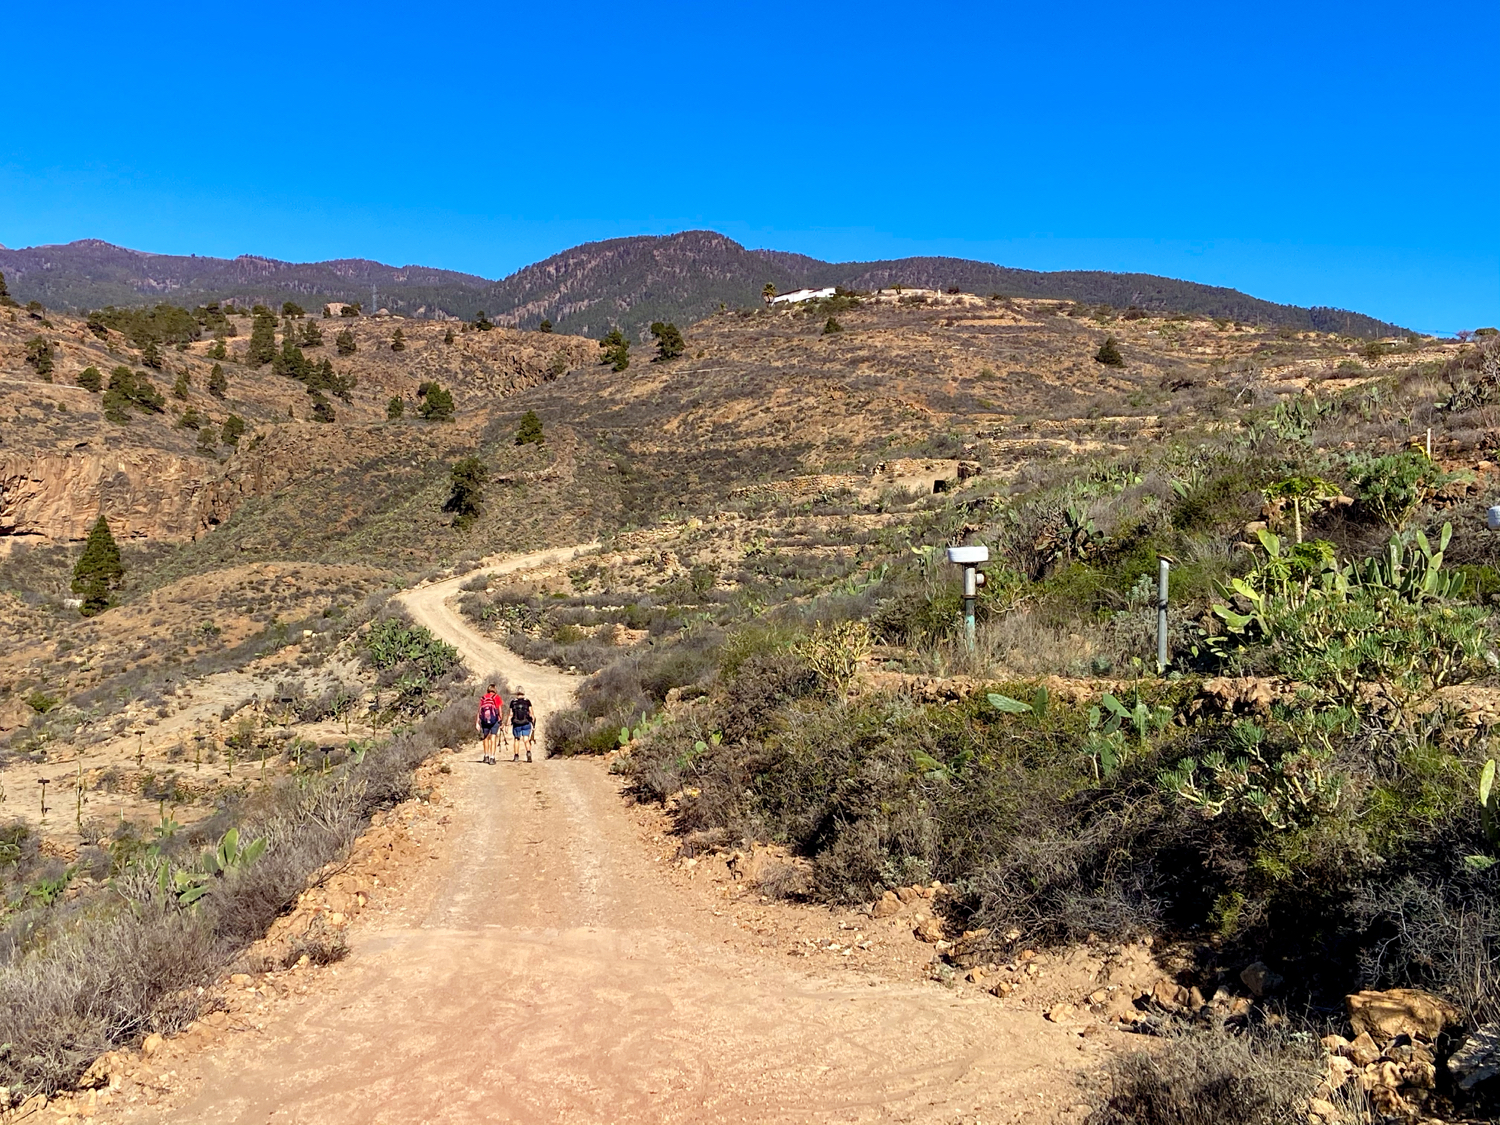 Hiking trail towards Barranco Tamadaya